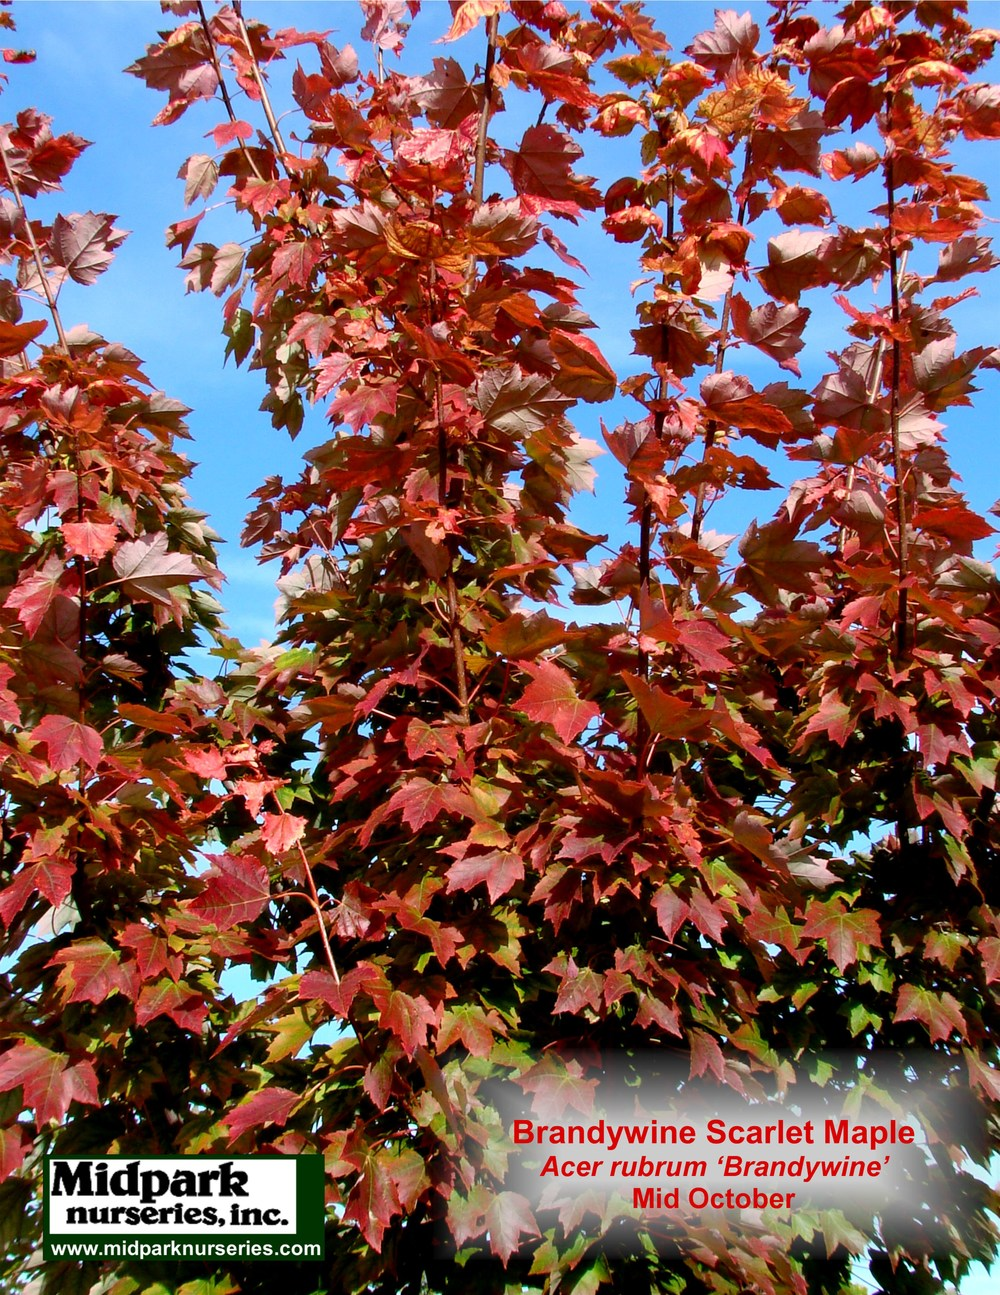 Brandywine Scarlet Maple